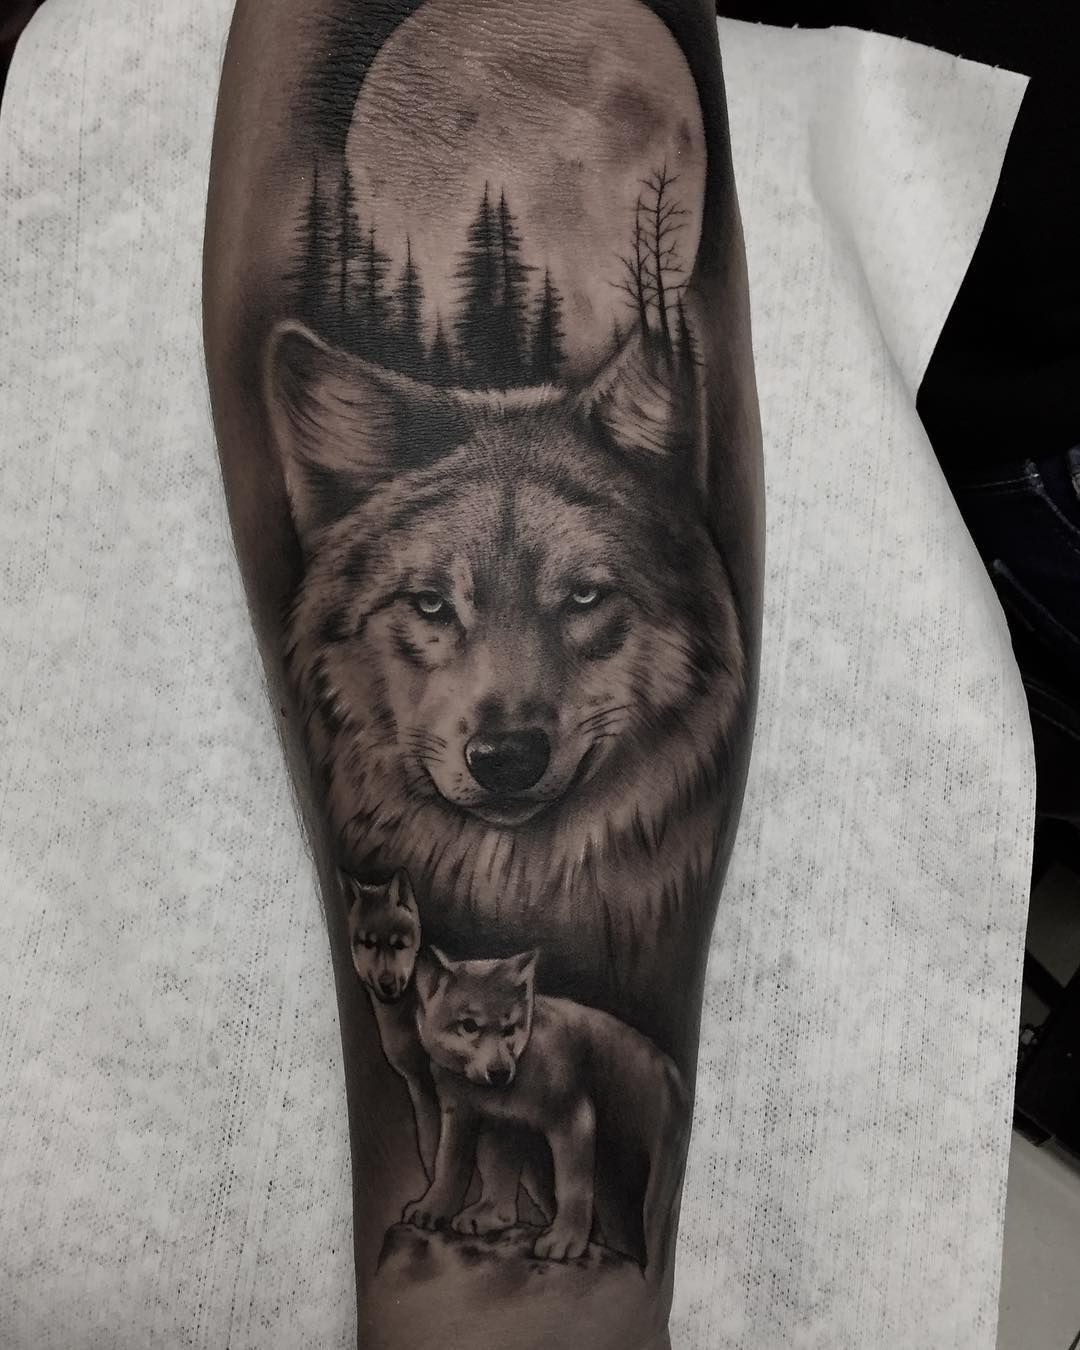 Today S Deals New Deals Every Day In 2020 Wolf Tattoo Sleeve Wolf Tattoos Men Tribal Wolf Tattoo